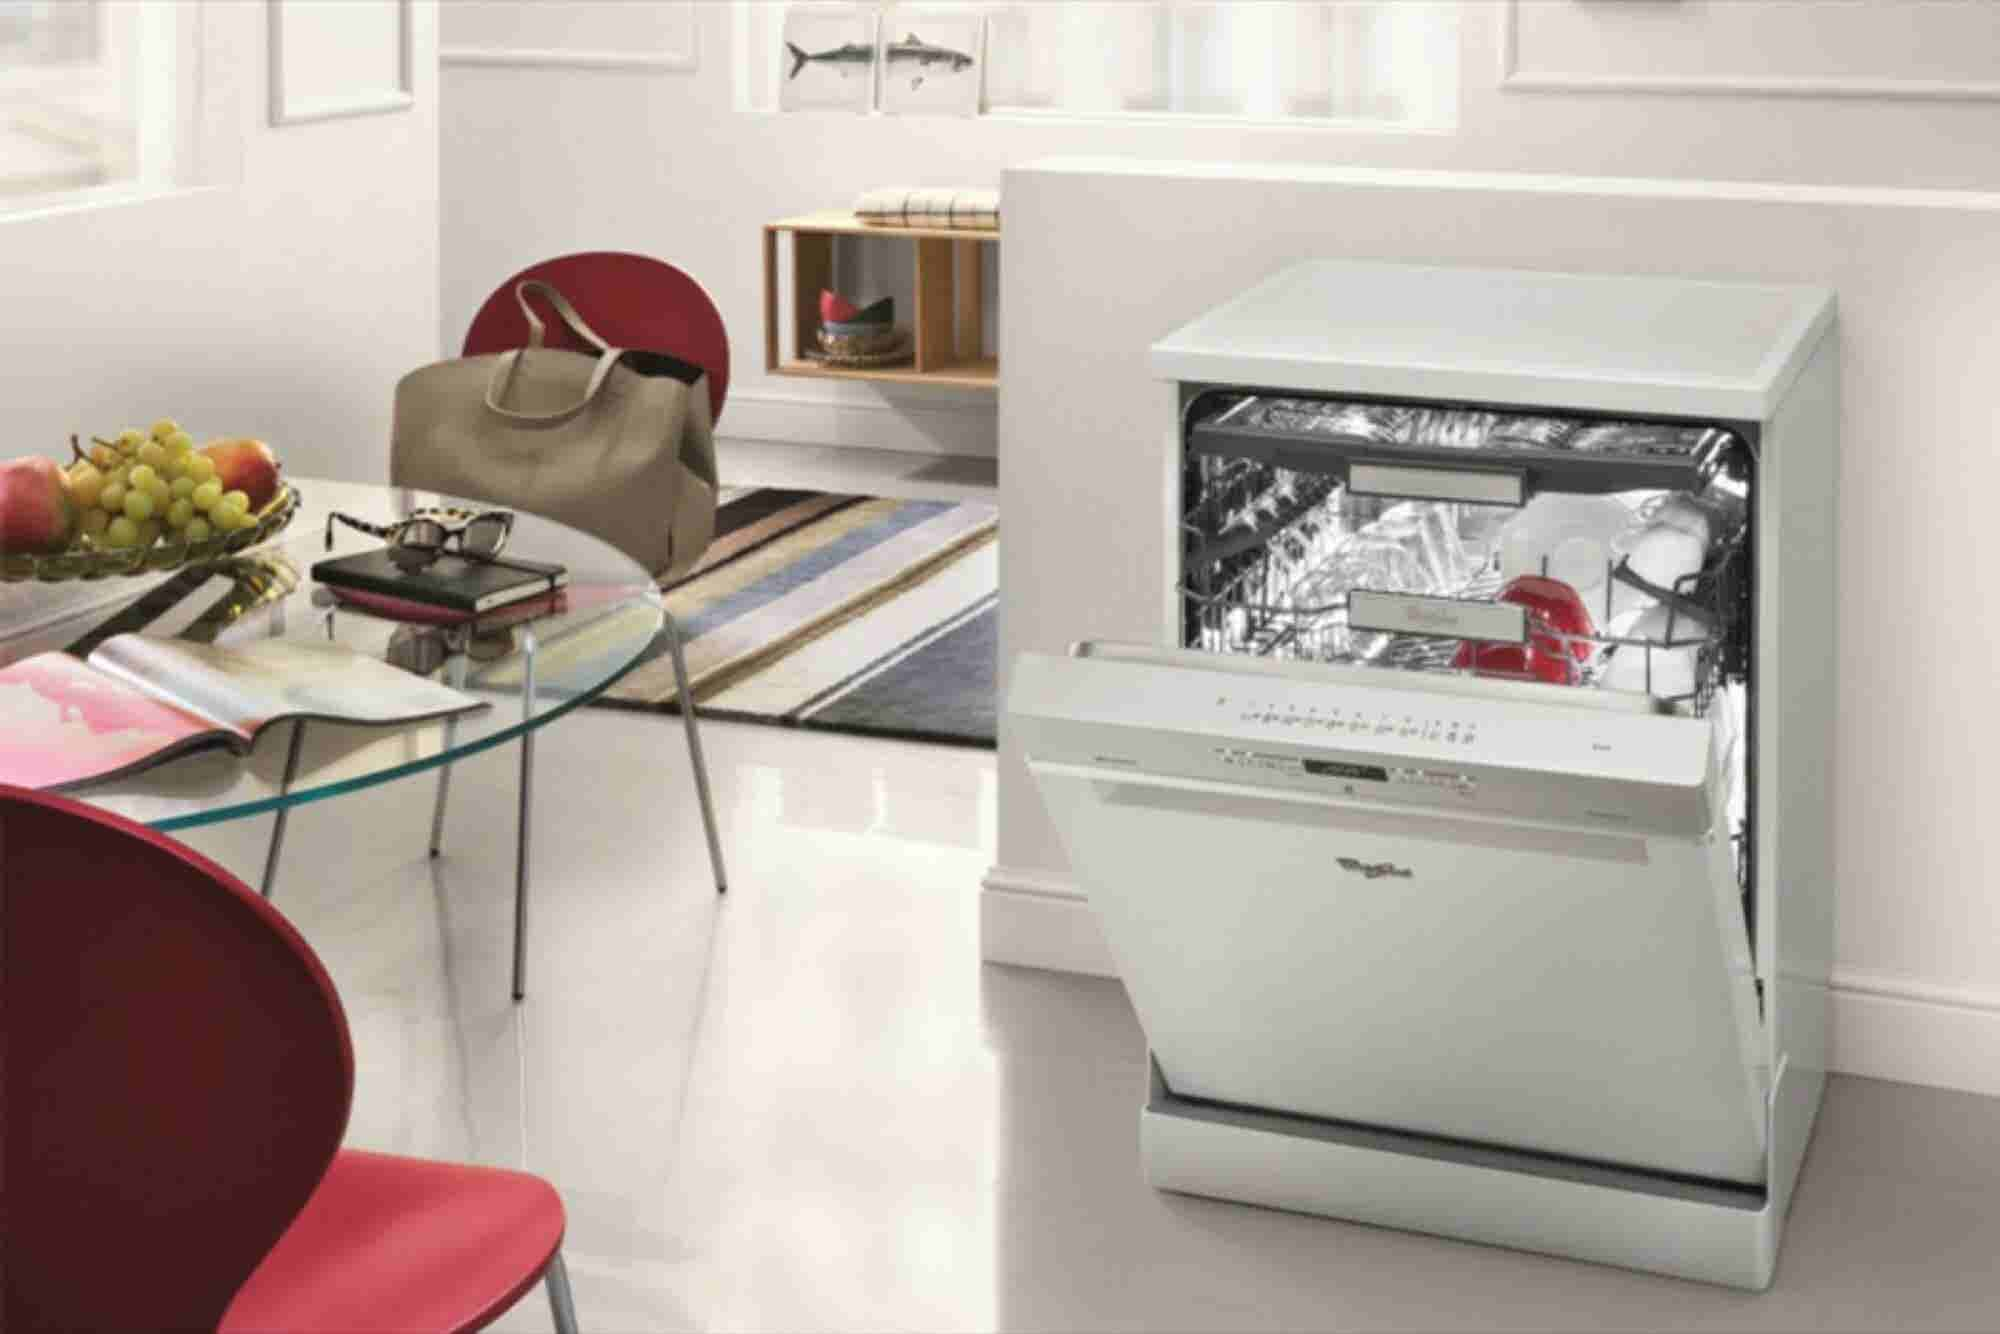 Come Clean: Whirlpool's 6th SENSE Dishwasher